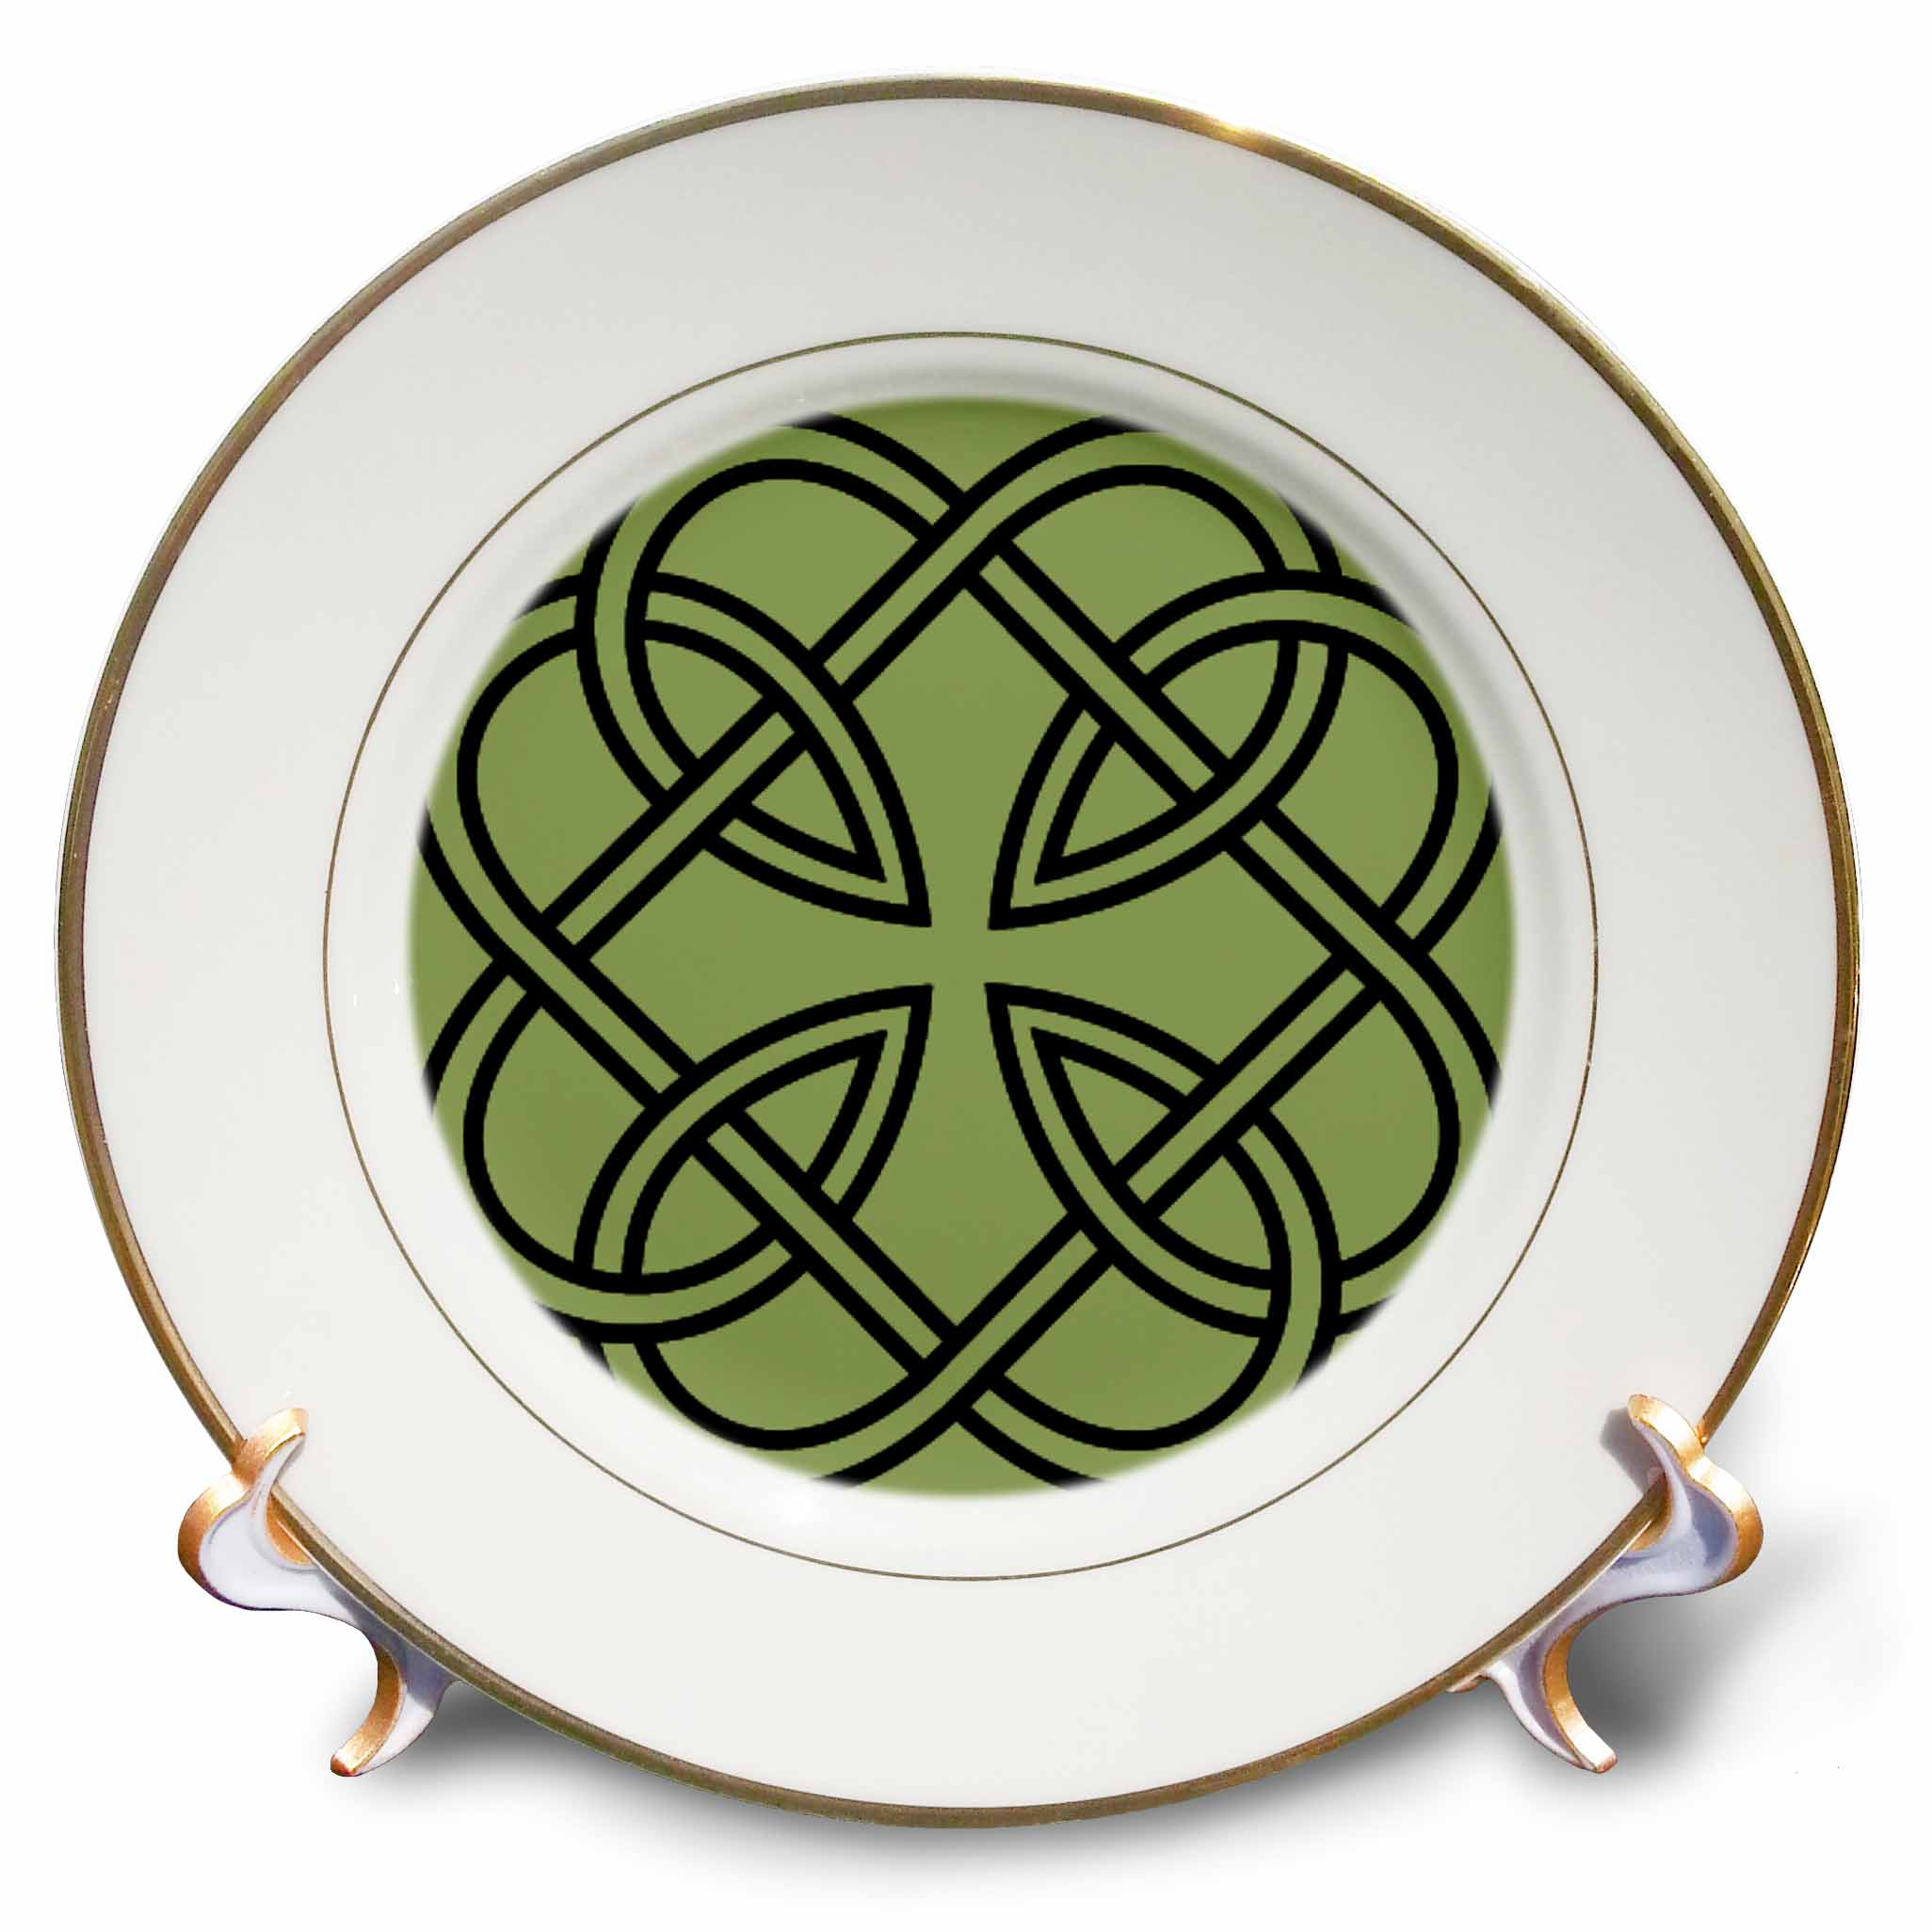 3dRose Black Celtic Design on A Moss Green Background, Porcelain Plate, 8-inch